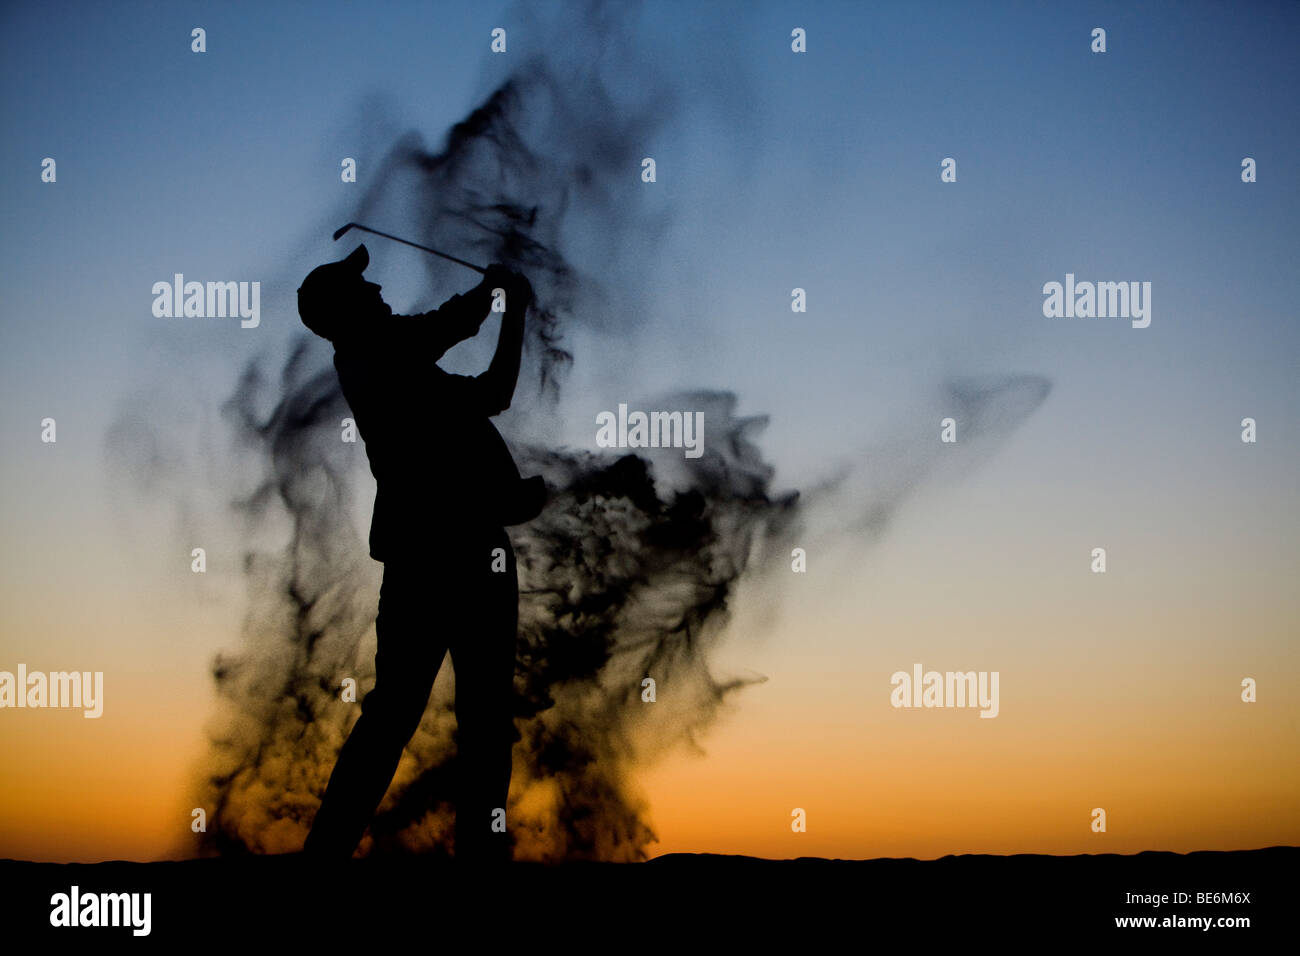 Silhouette of a golfer late in the day as he swings through a sand trap - Stock Image